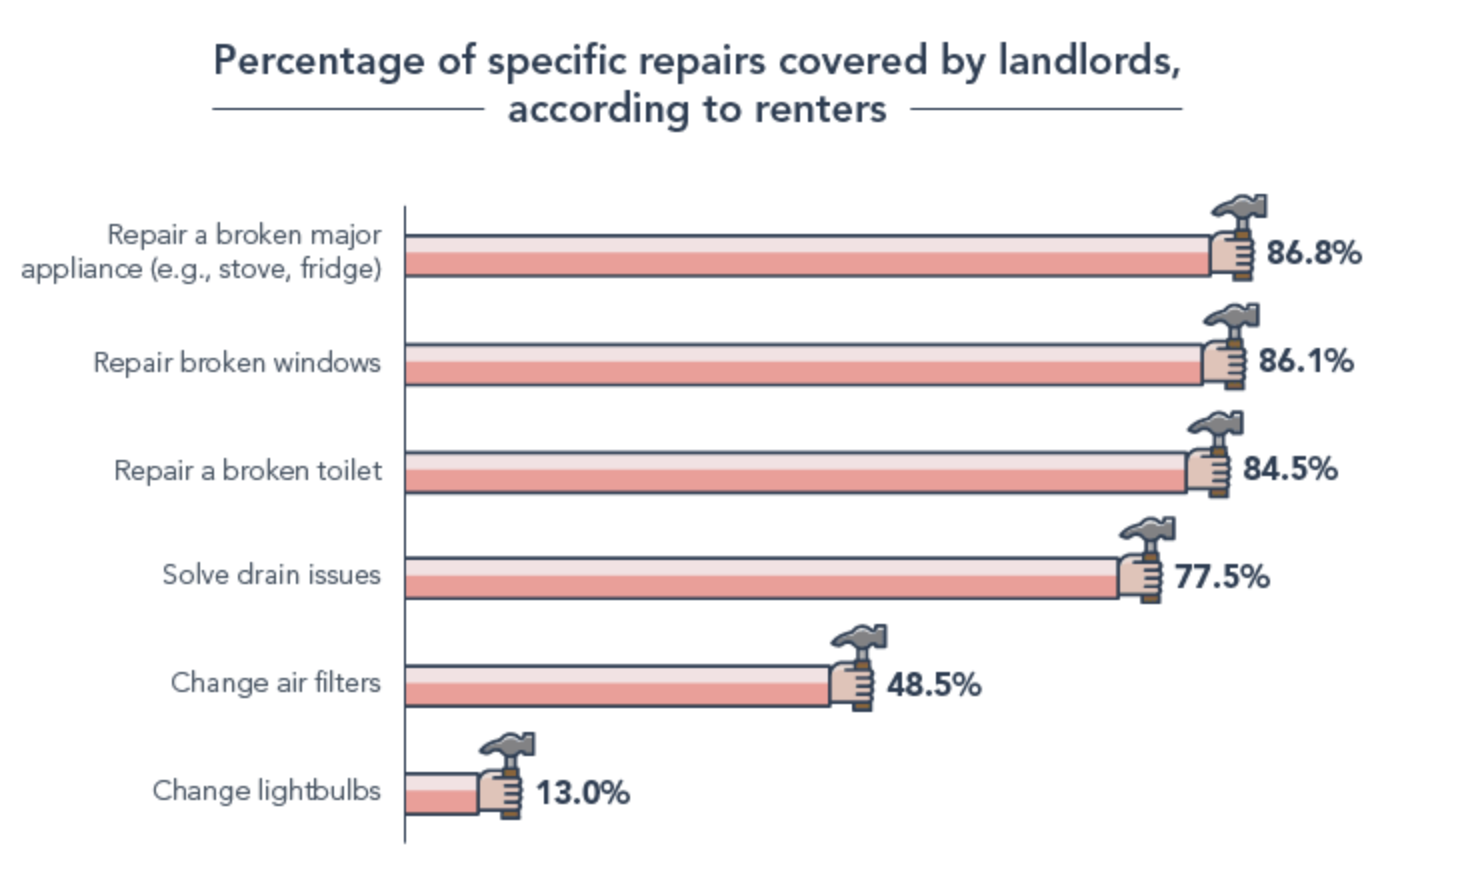 Graph showing the percentage of specific repairs covered by landlords (according to tenants): 87% repair a broken major appliance; 86% repair broken windows; 85% repair a broken toilet; 78% solve drain issues; 49% change air filters; and 13% change lightbulbs.